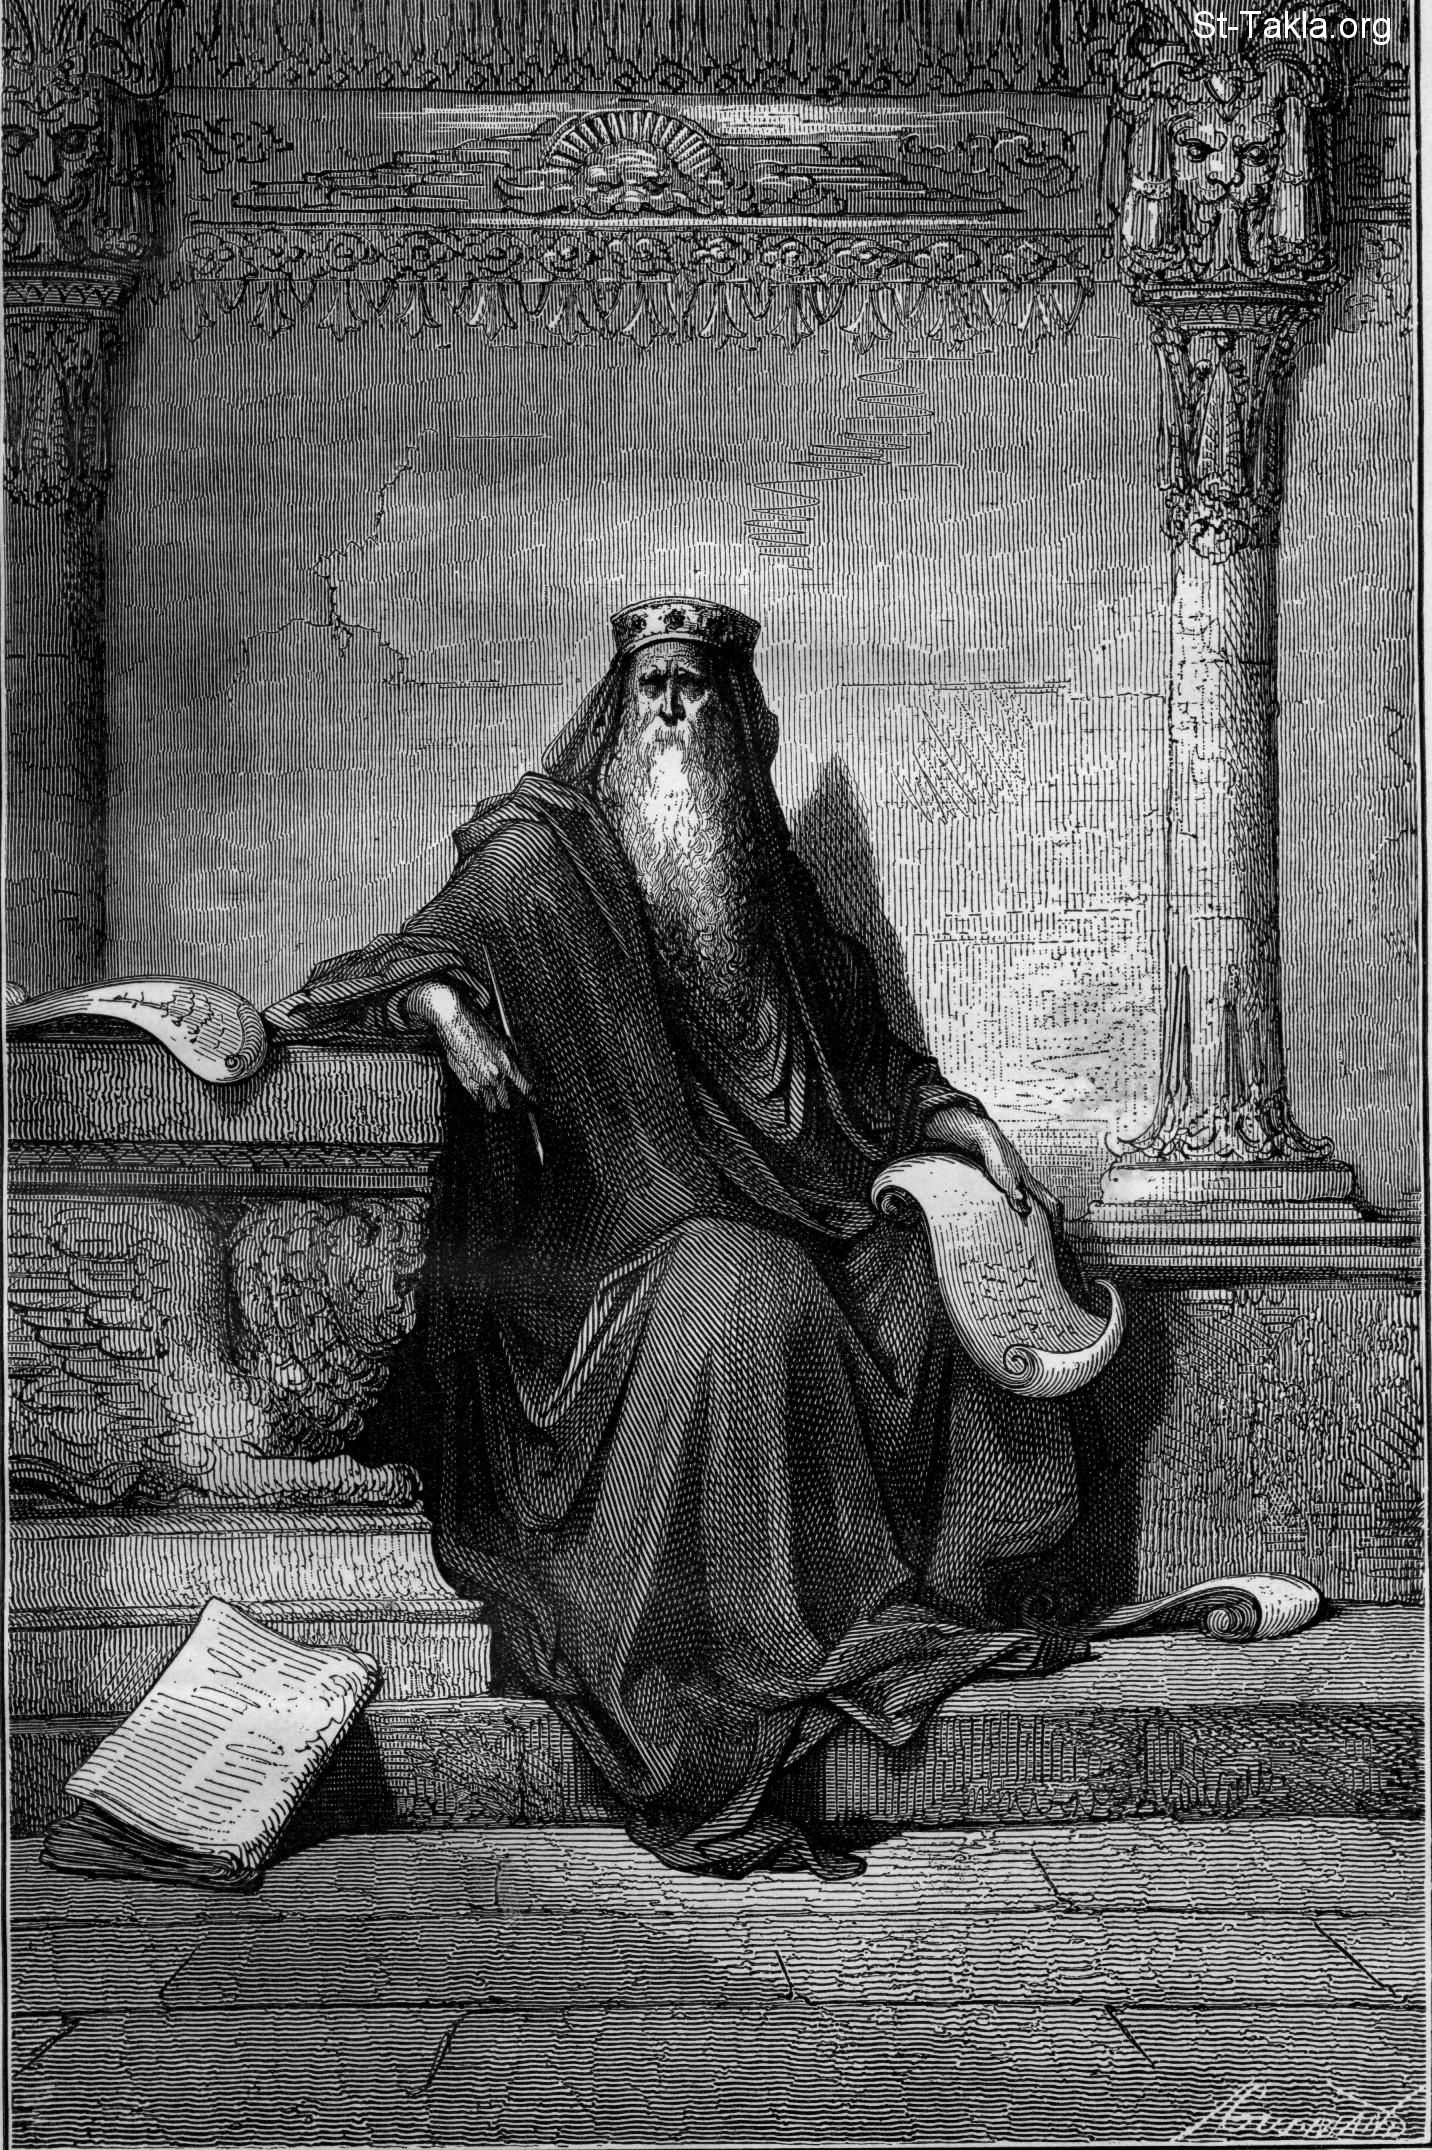 King Solomon by: Gustave Dore